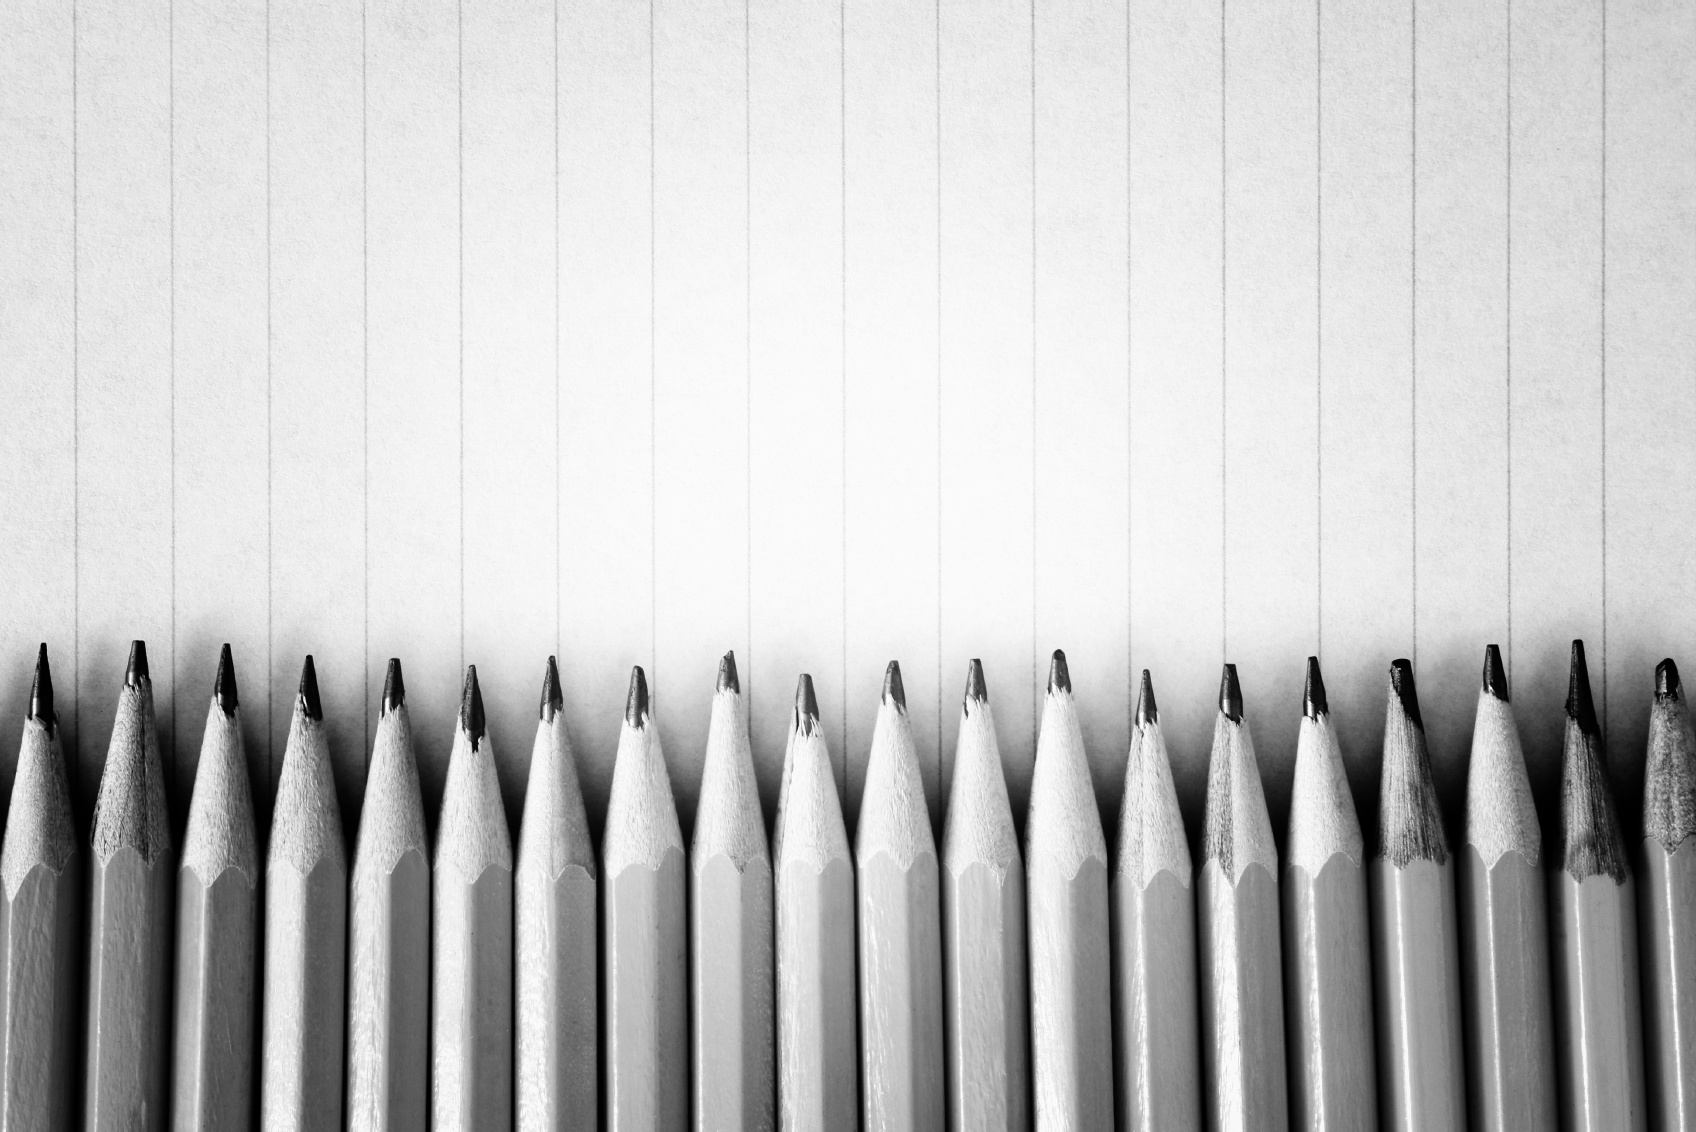 Sharpened pencils on a lined paper background